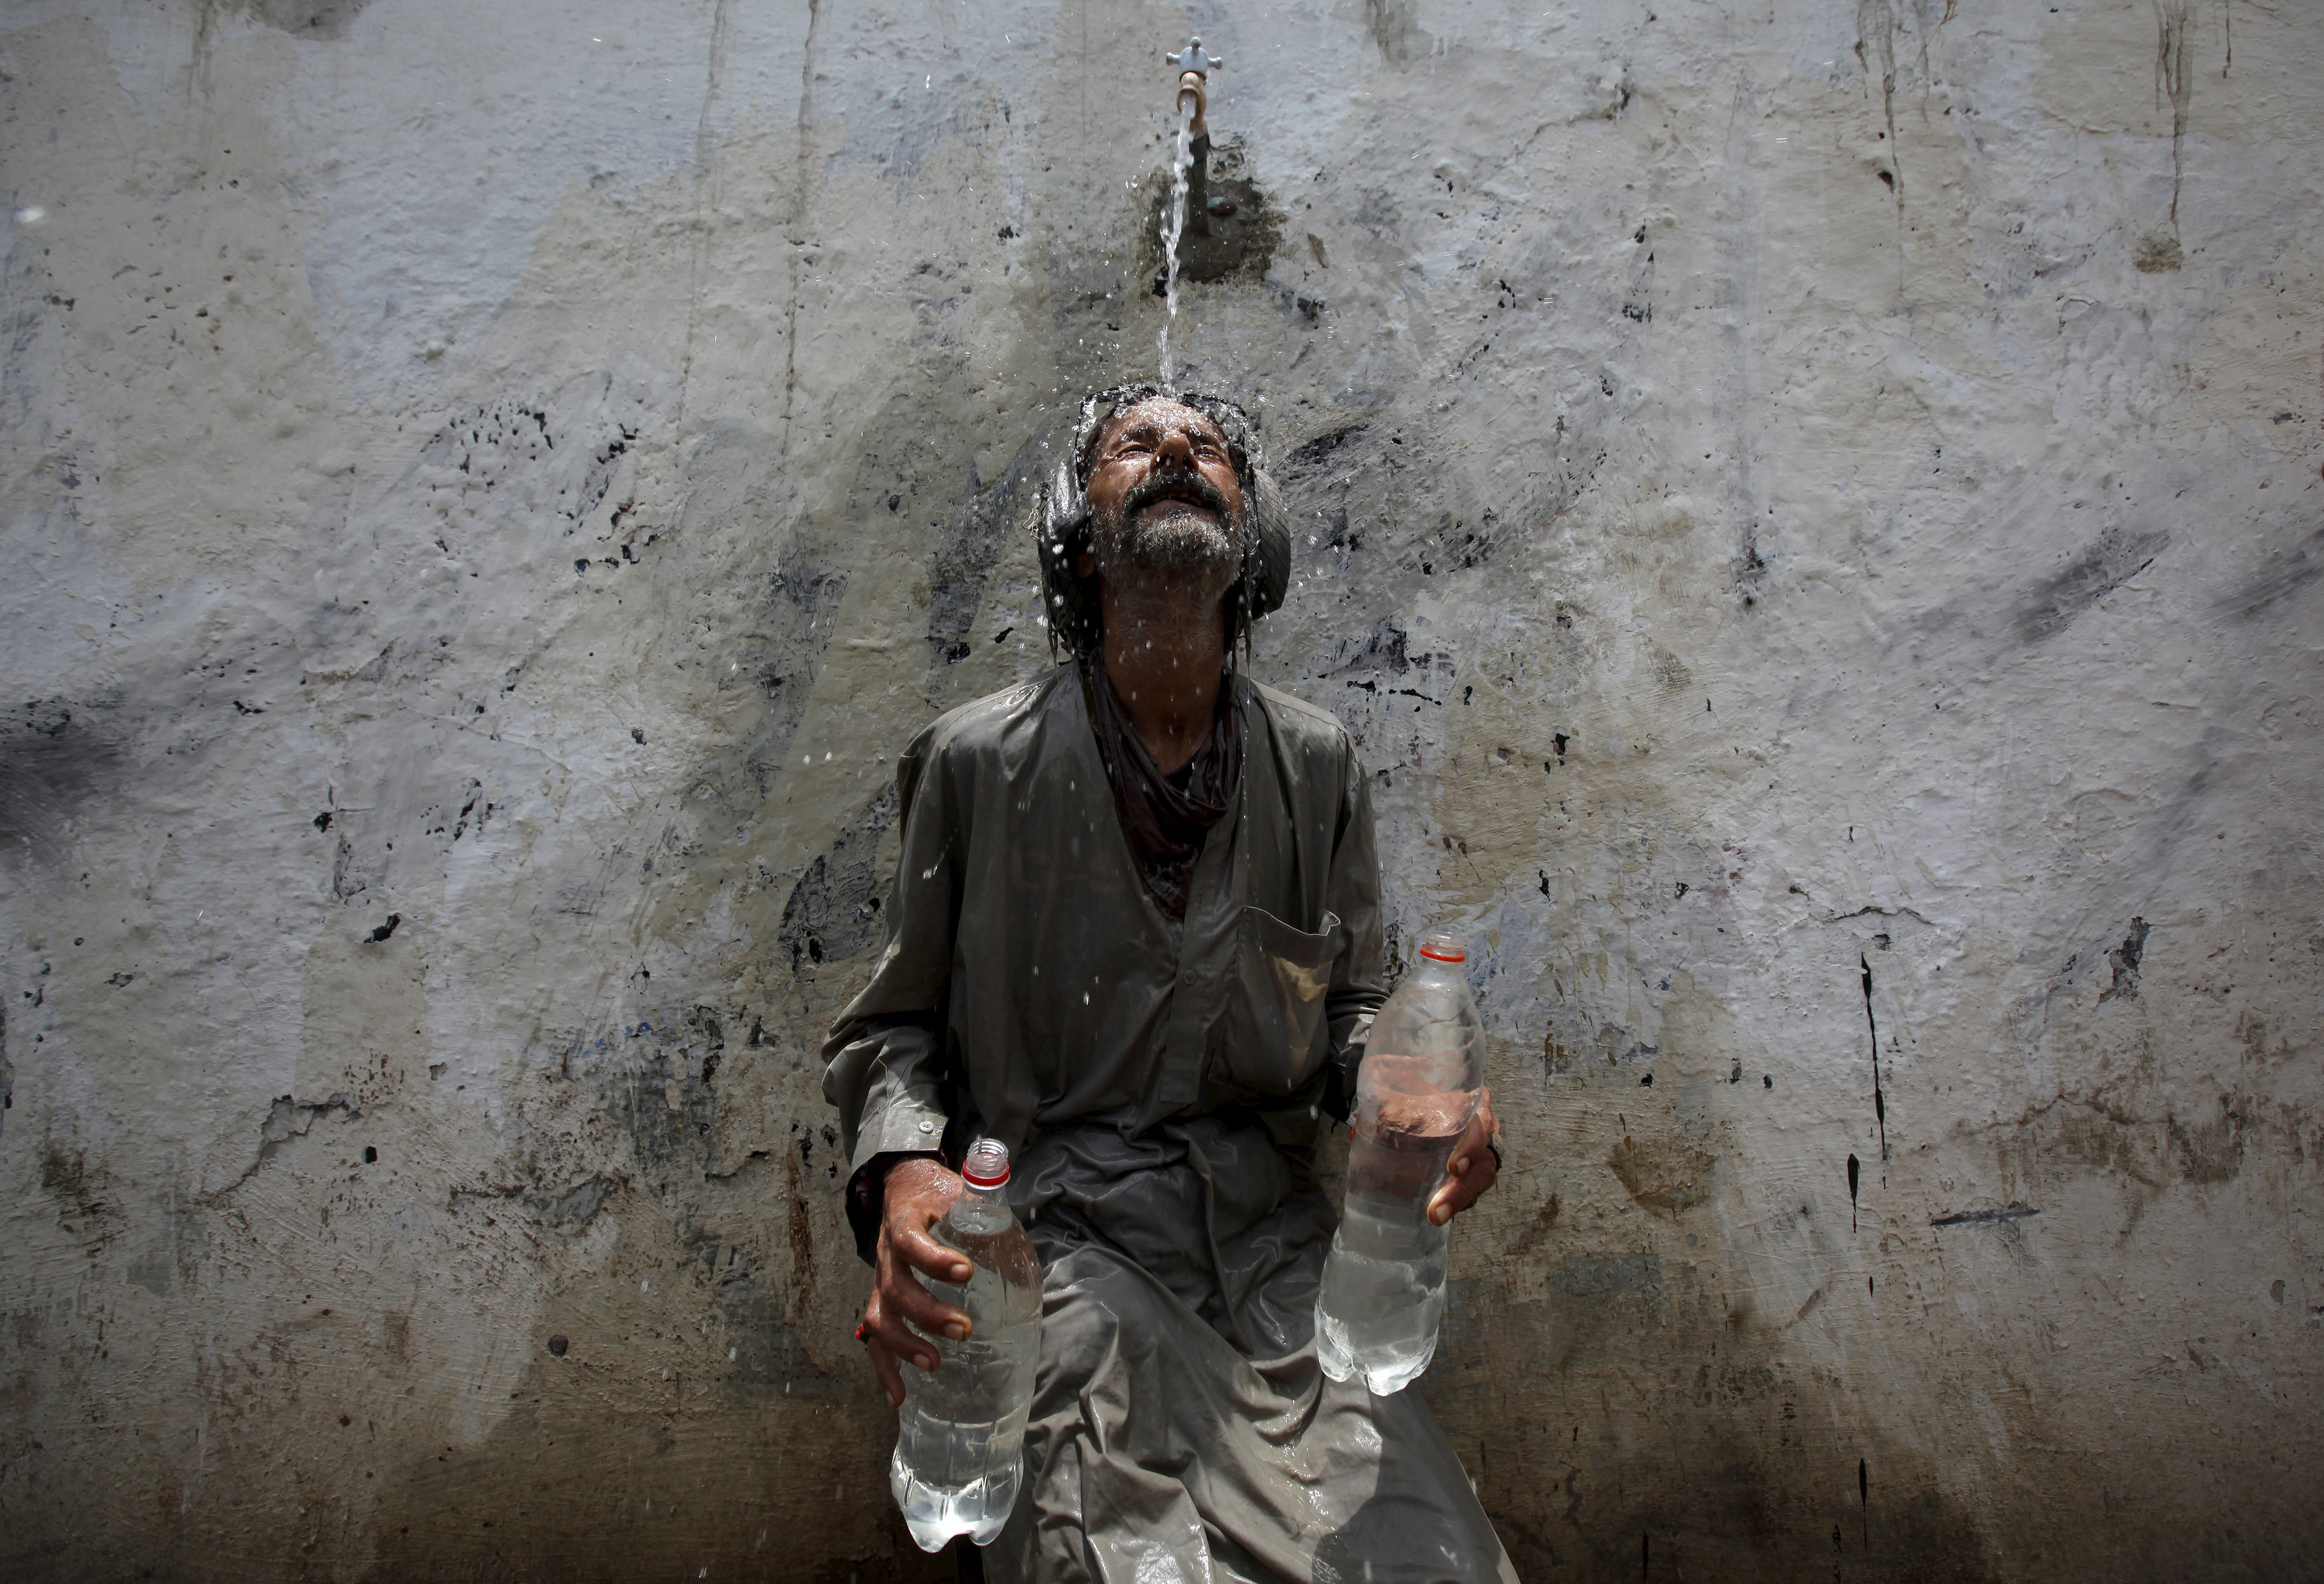 A man cools off from a public tap after filling bottles during intense hot weather in Karachi, Pakistan, on June 23, 2015.